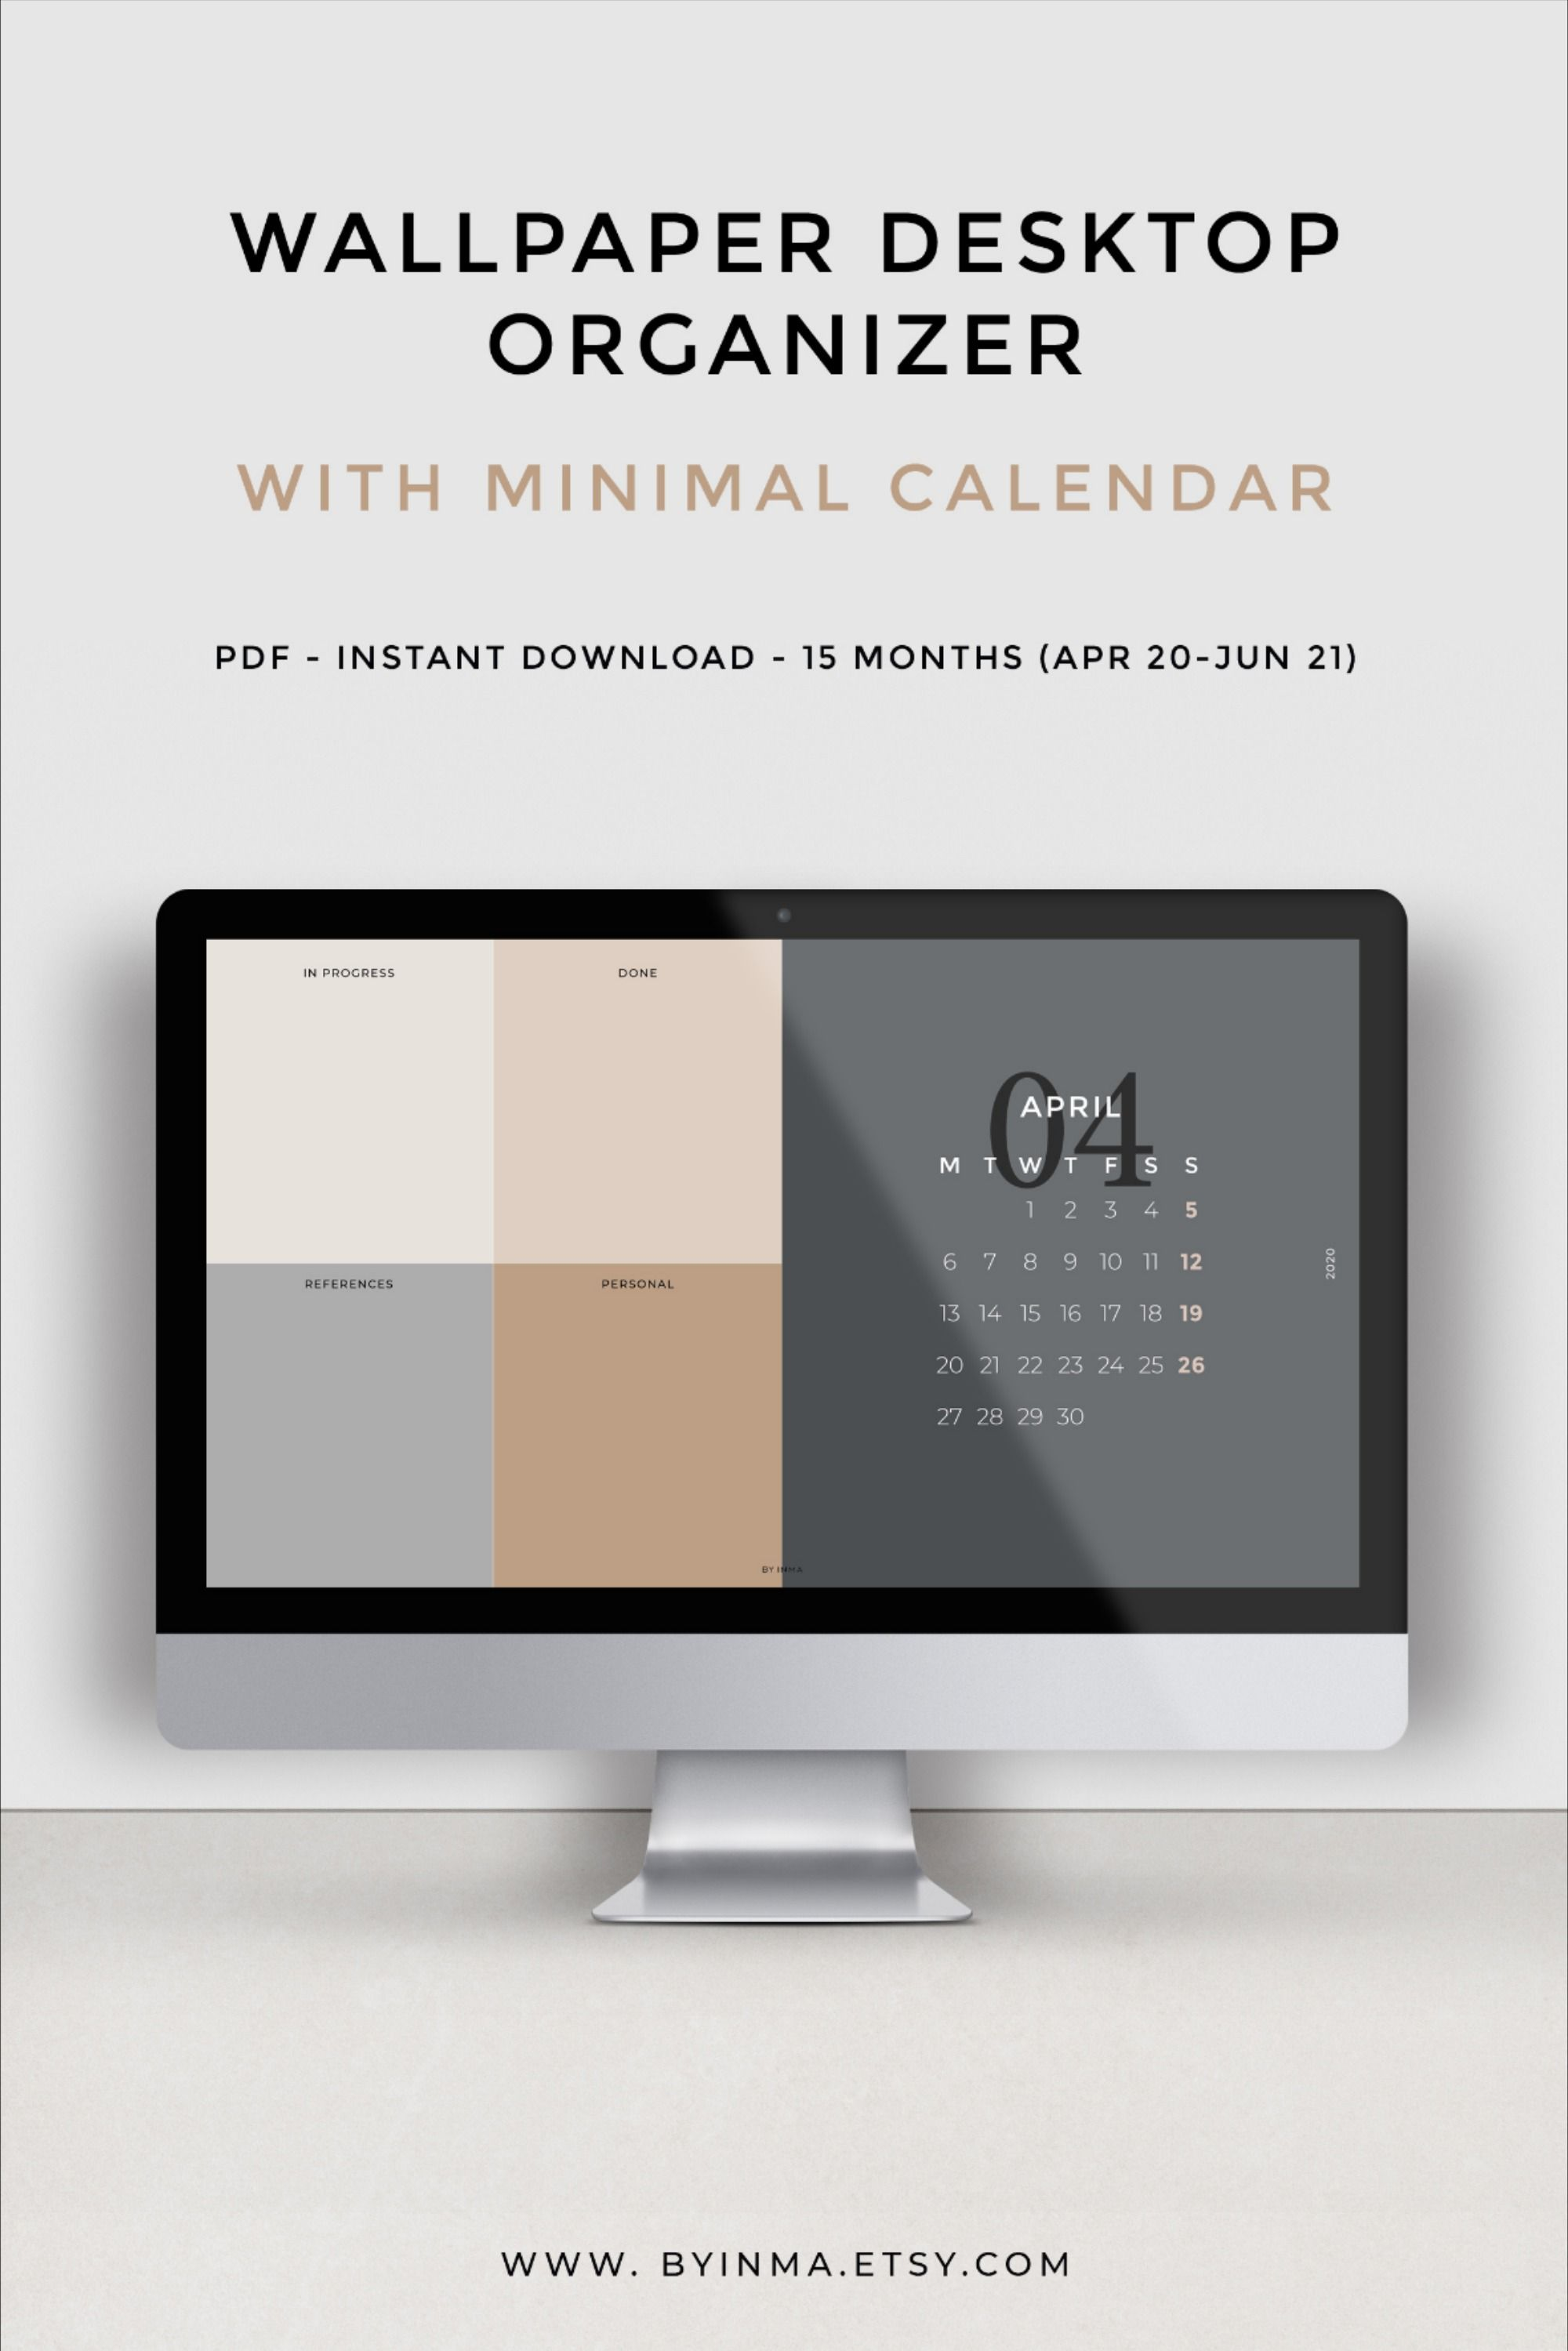 Desktop Wallpaper Calendar Organizer Minimalist Calendar 2021 2022 Desktop Background Matching Folder Icons Included In 2021 Desktop Wallpaper Calendar Desktop Organization Desktop Wallpaper Organizer